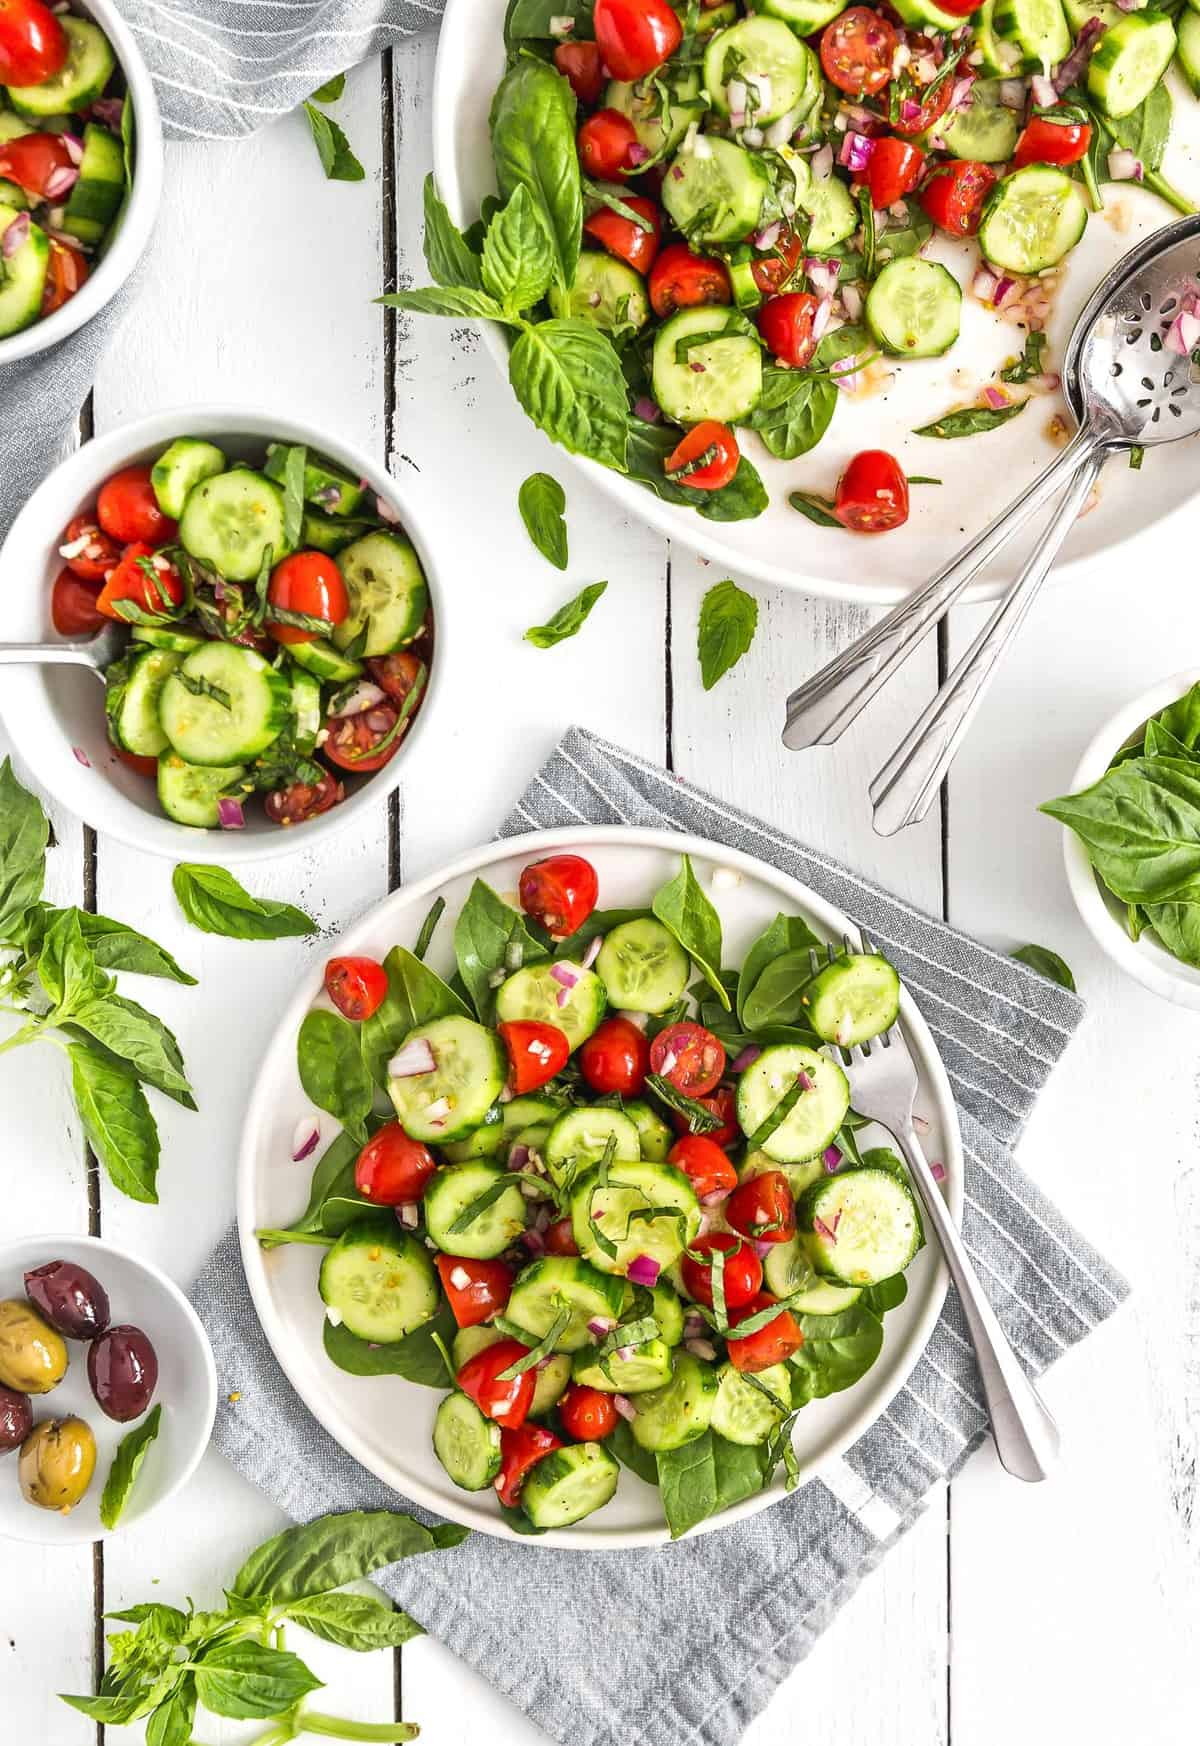 Cucumber Tomato Salad, cucumbers, tomato, salad, plant based, vegan, vegetarian, whole food plant based, gluten free, recipe, wfpb, healthy, healthy vegan, oil free, no refined sugar, no oil, refined sugar free, dairy free, appetizer, starter, snack, dinner, lunch, veggies